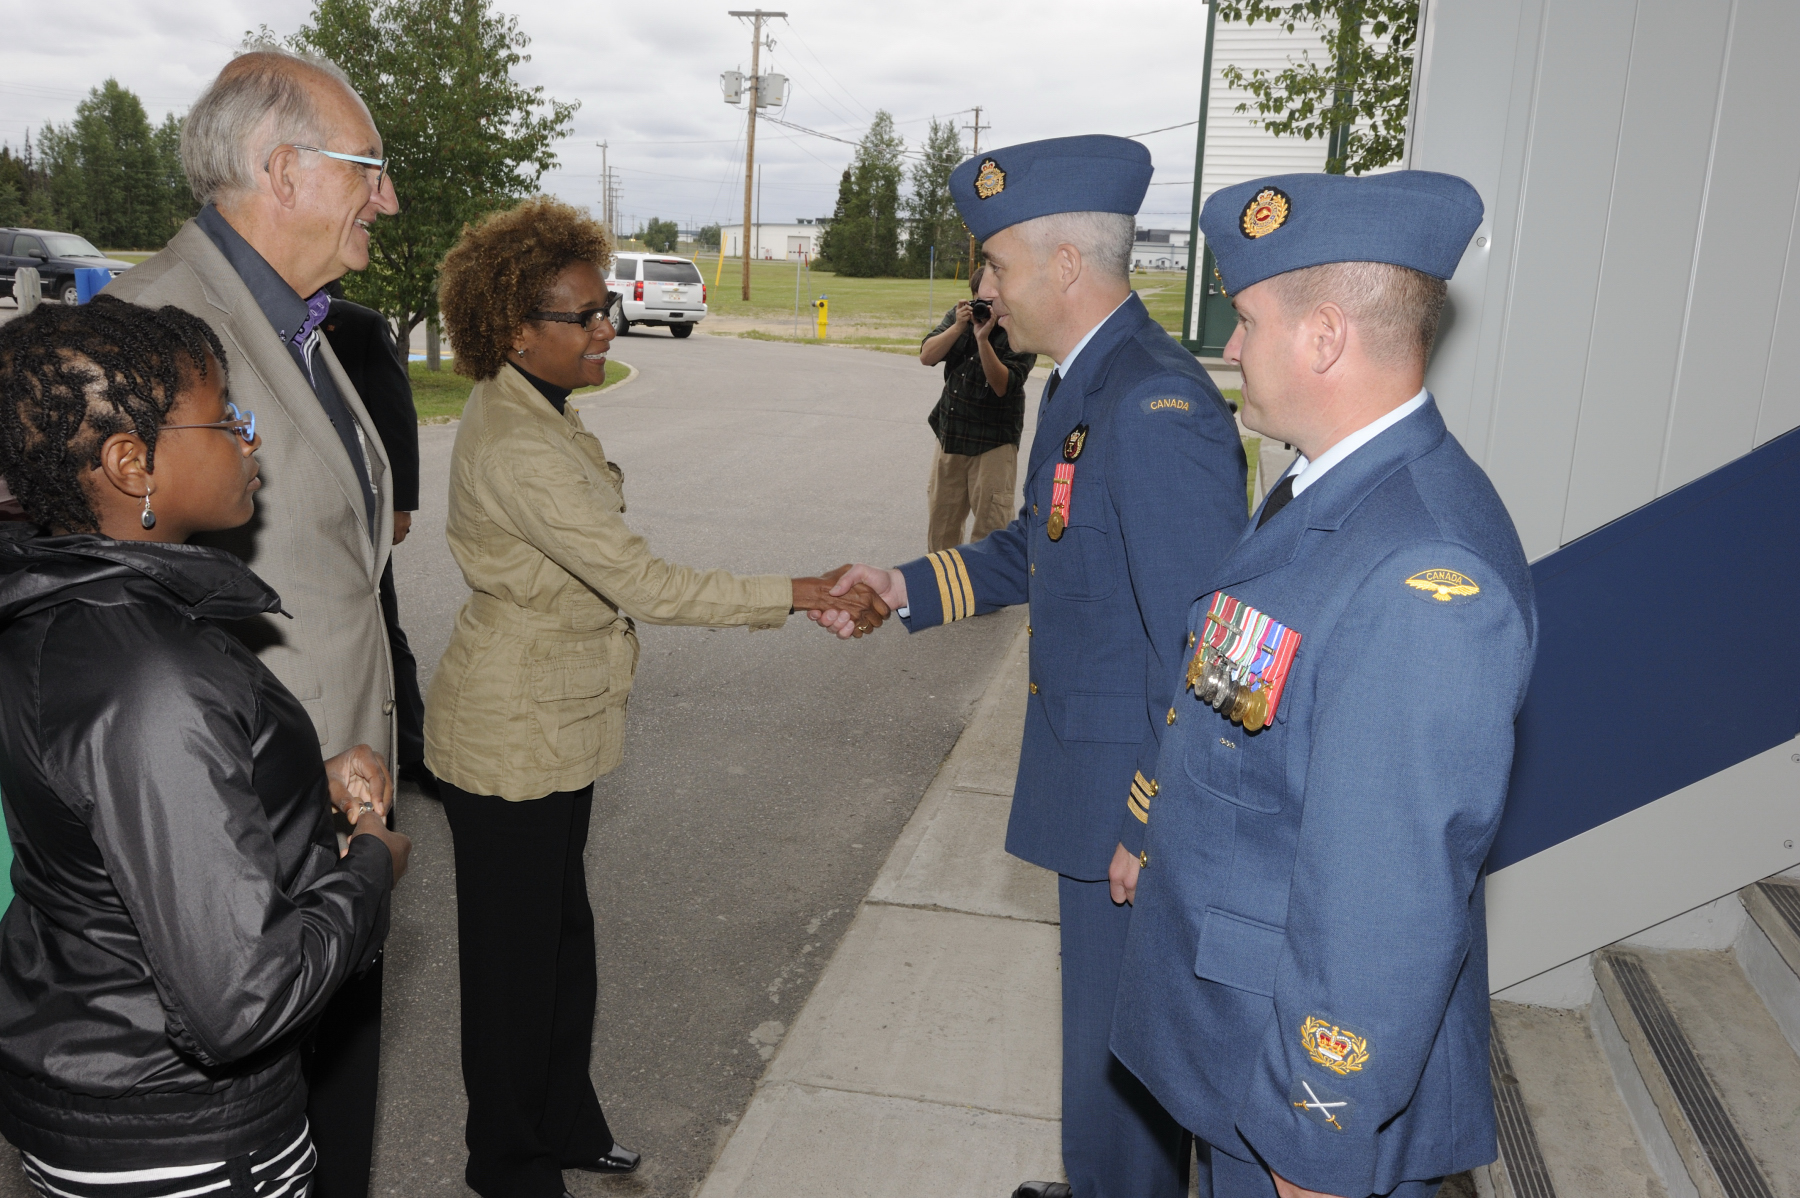 Their Excellencies were greeted by 5 Wing Commander LCol Fleming to 5 Wing Goose Bay.